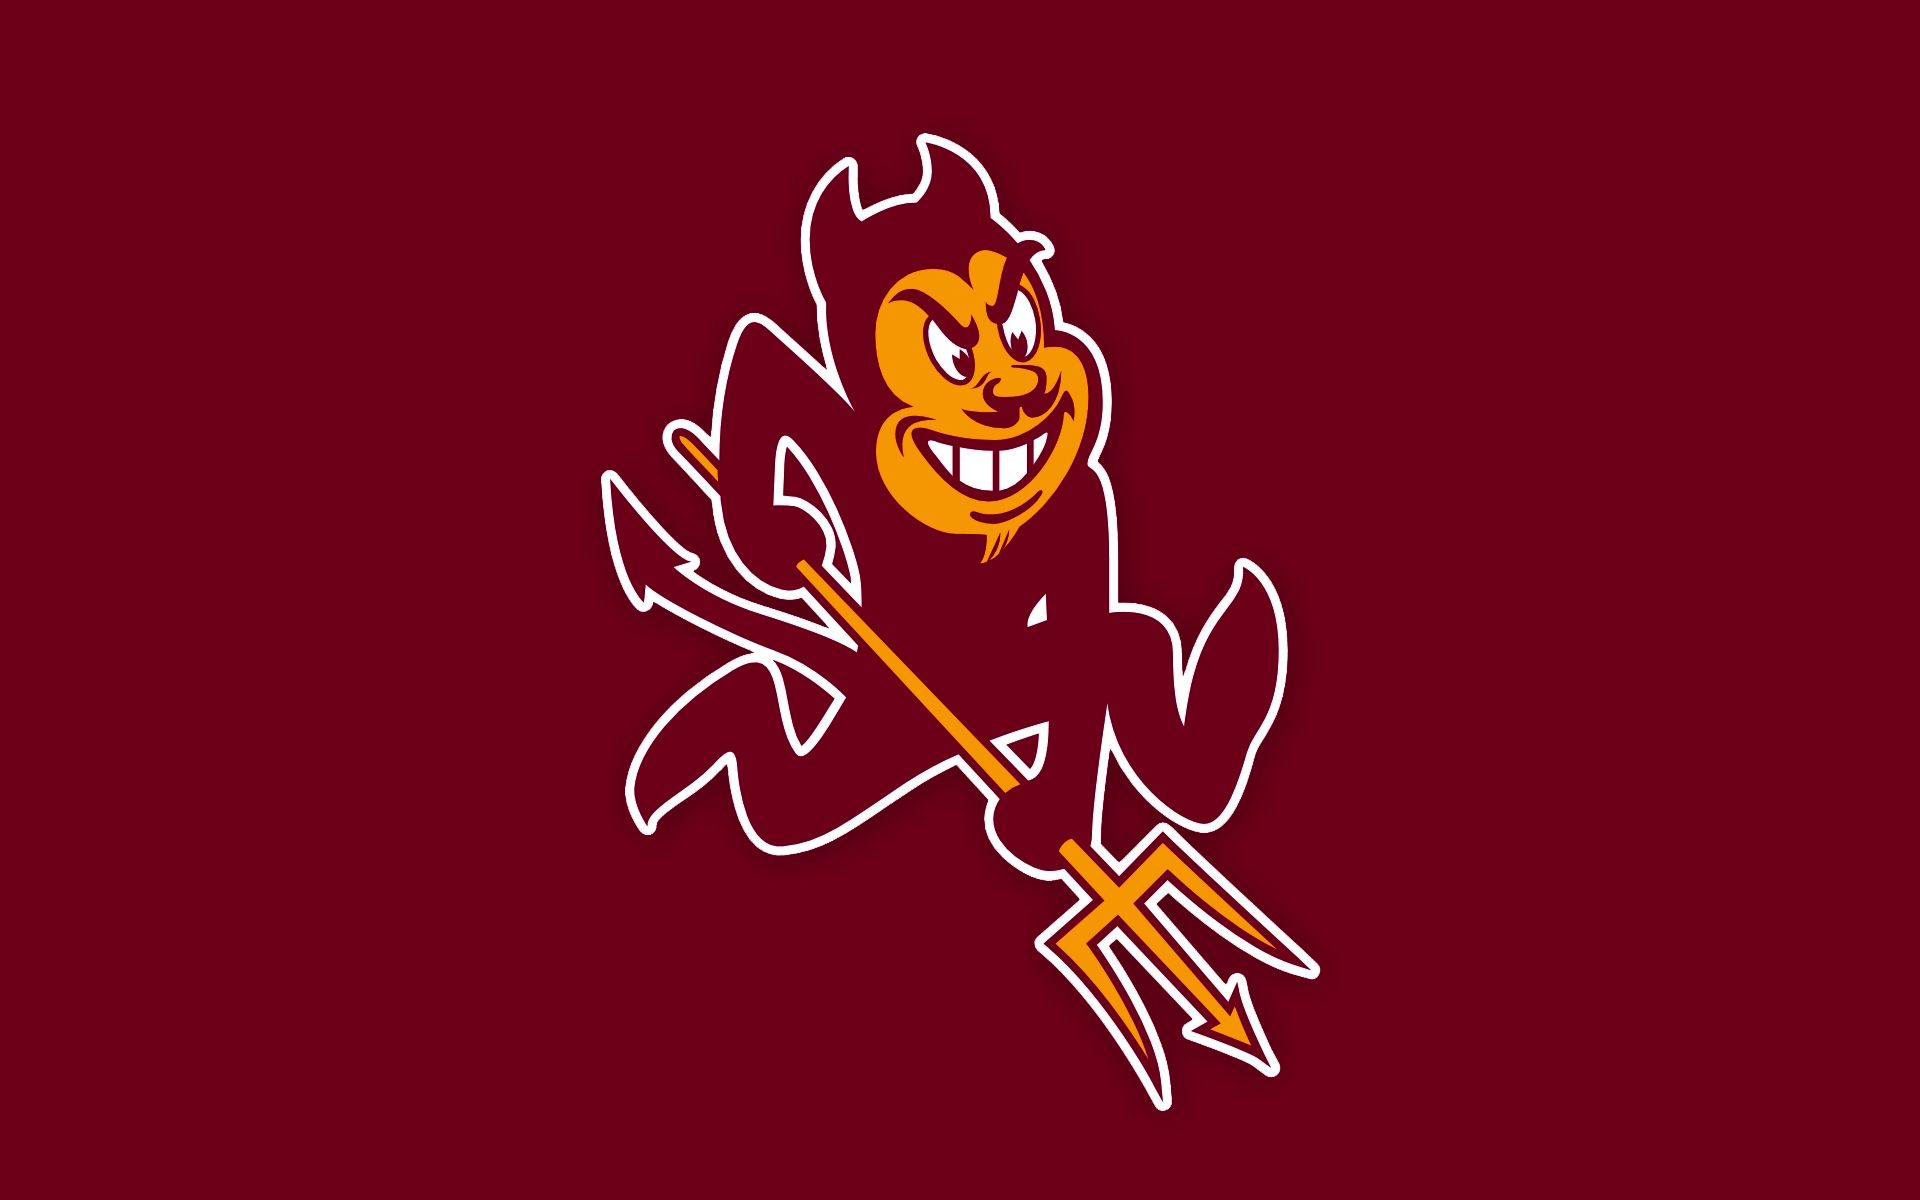 ebe2ba461b7e48 Arizona State Sun Devils Wallpaper #2 | Arizona State University ...